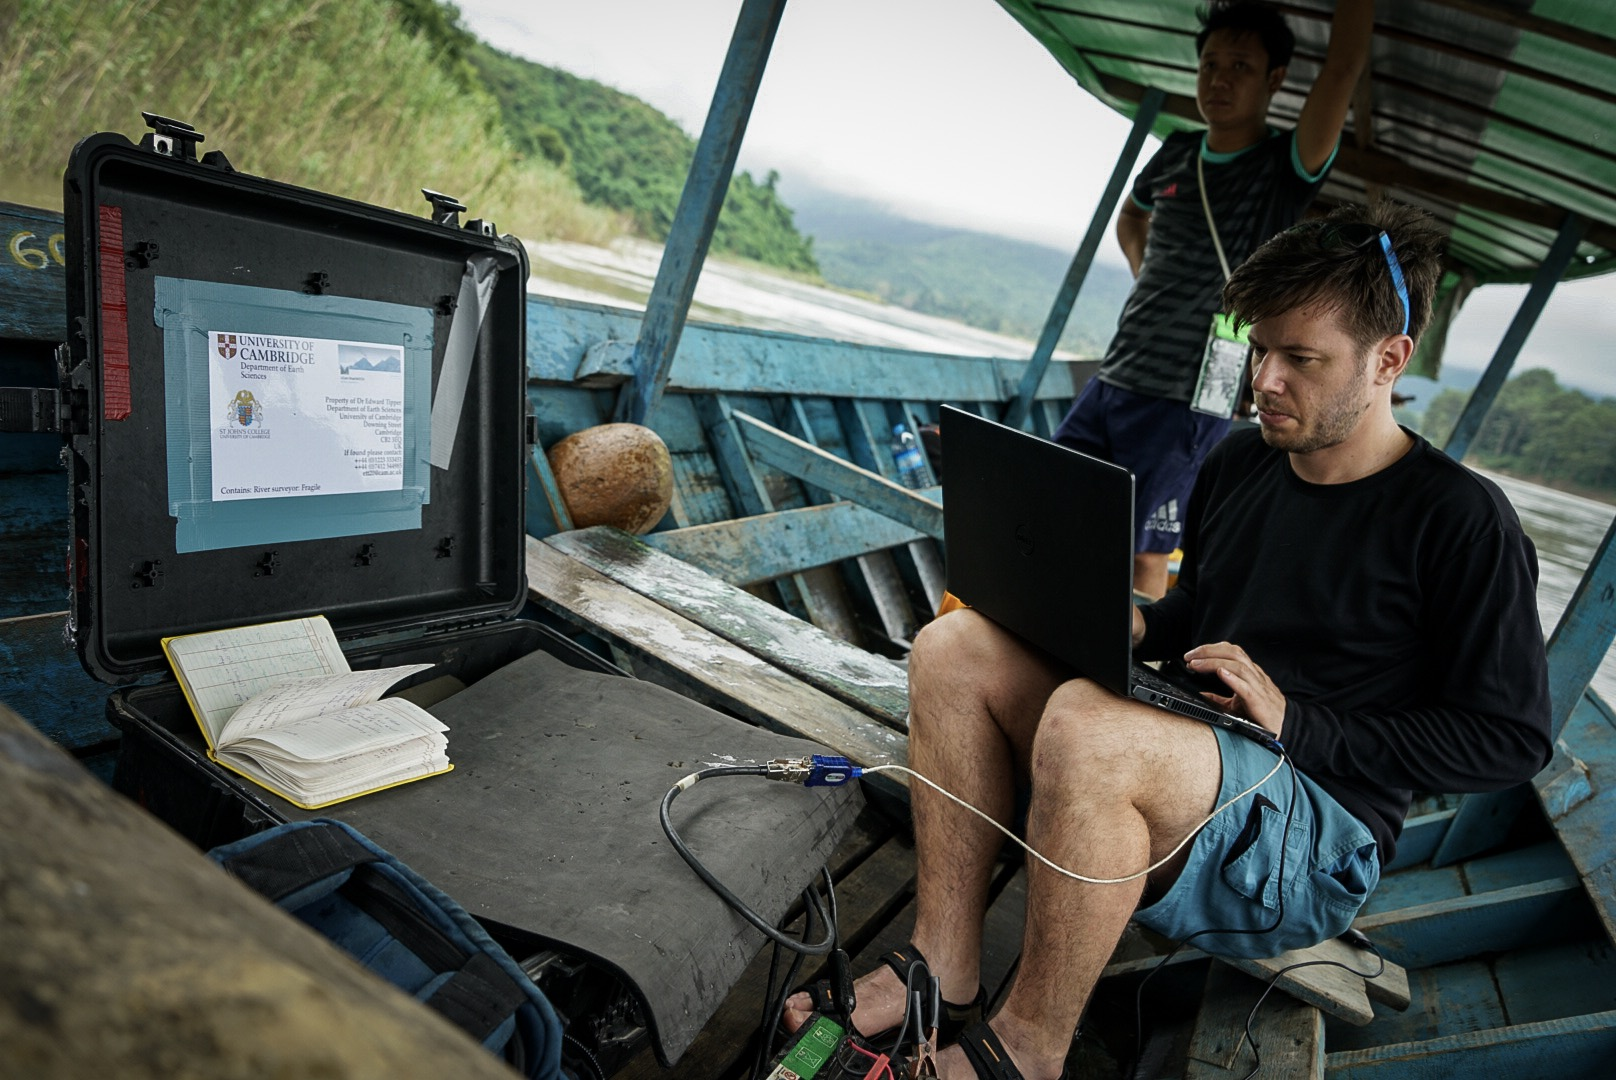 Image of Jotis measuring the flow of the Irrawaddy River